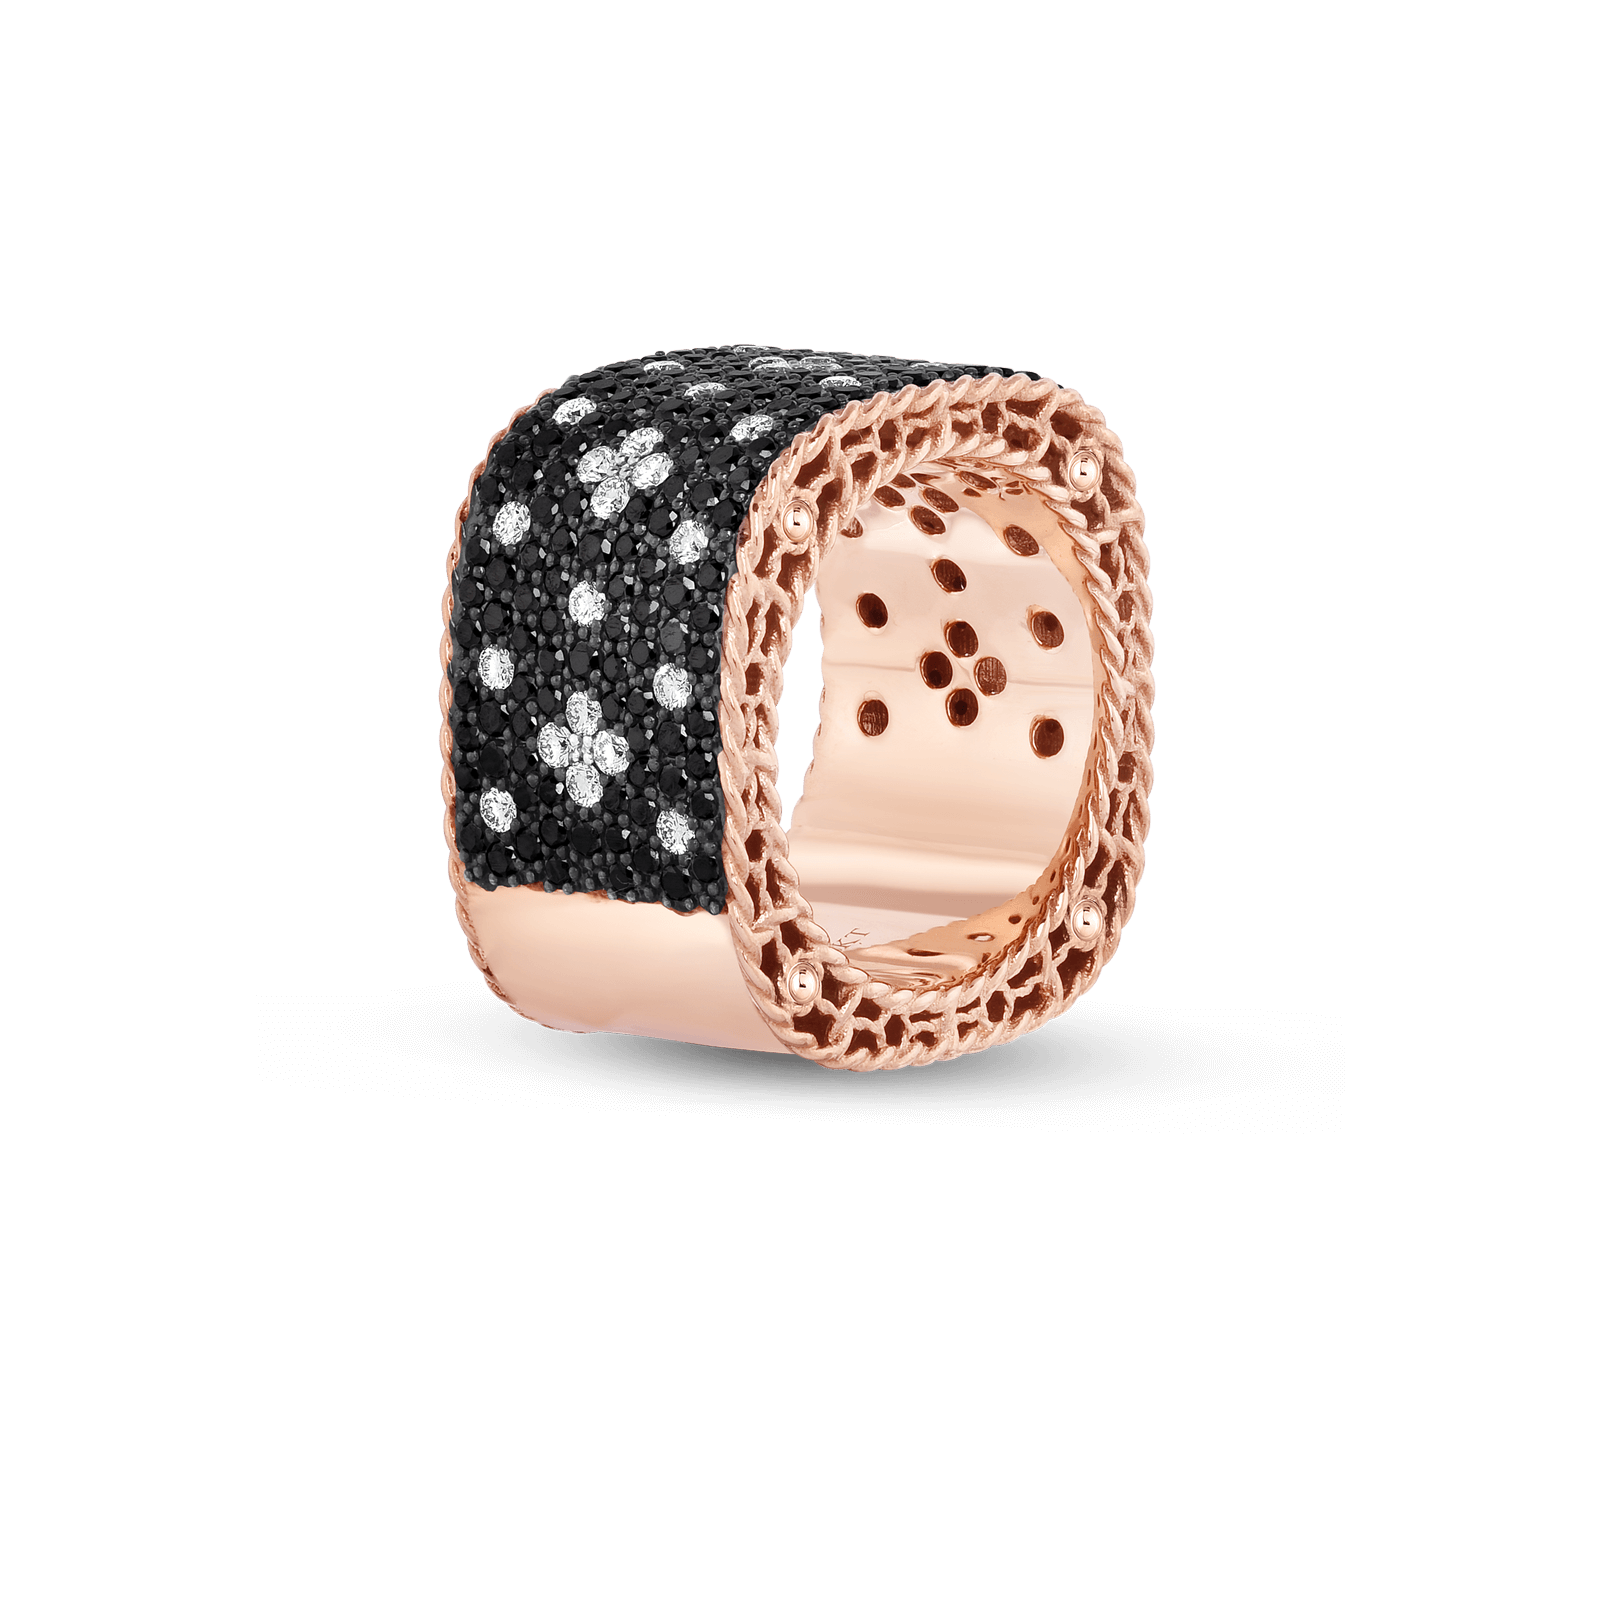 Roberto-Coin-18k-Rose-Gold-Venentian-Princess-Wide-Ring-with-Black-and-White-Fleur-de-Lis-Diamonds-8882251ax65x_side